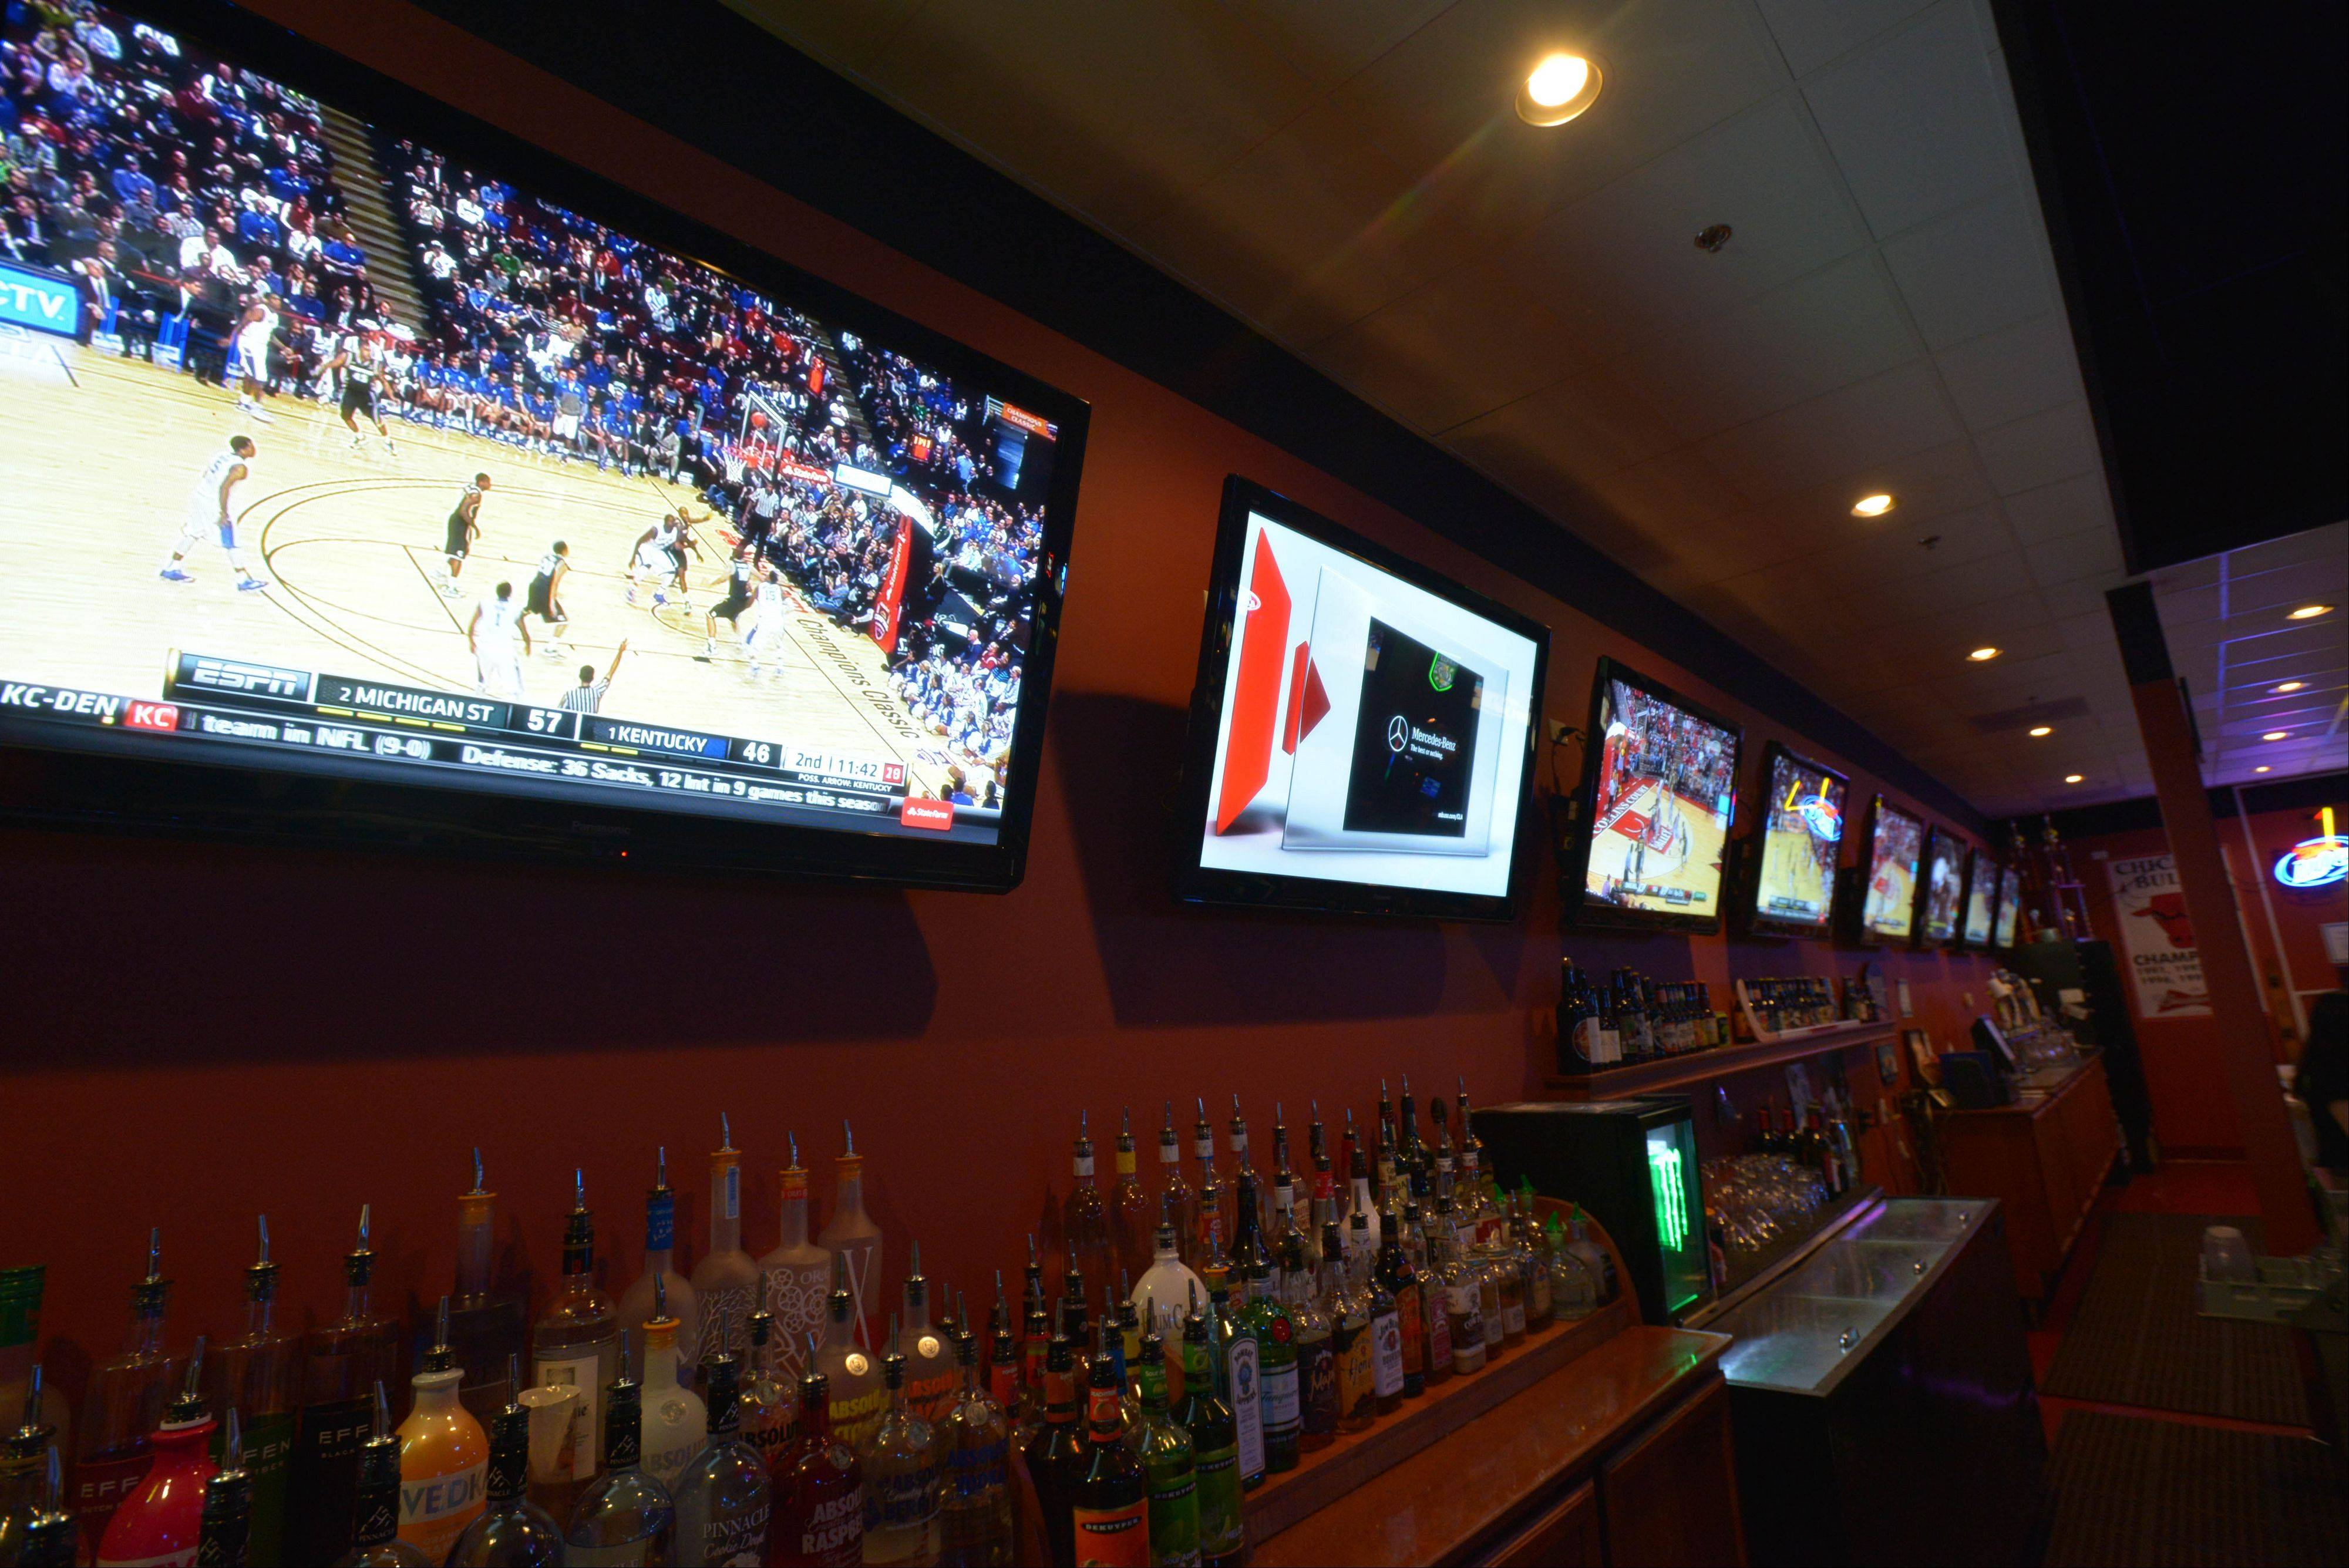 The Town Bar & Grill in Aurora has 20 TVs including three projector screens in back, which show football, hockey and baseball games and UFC fights.